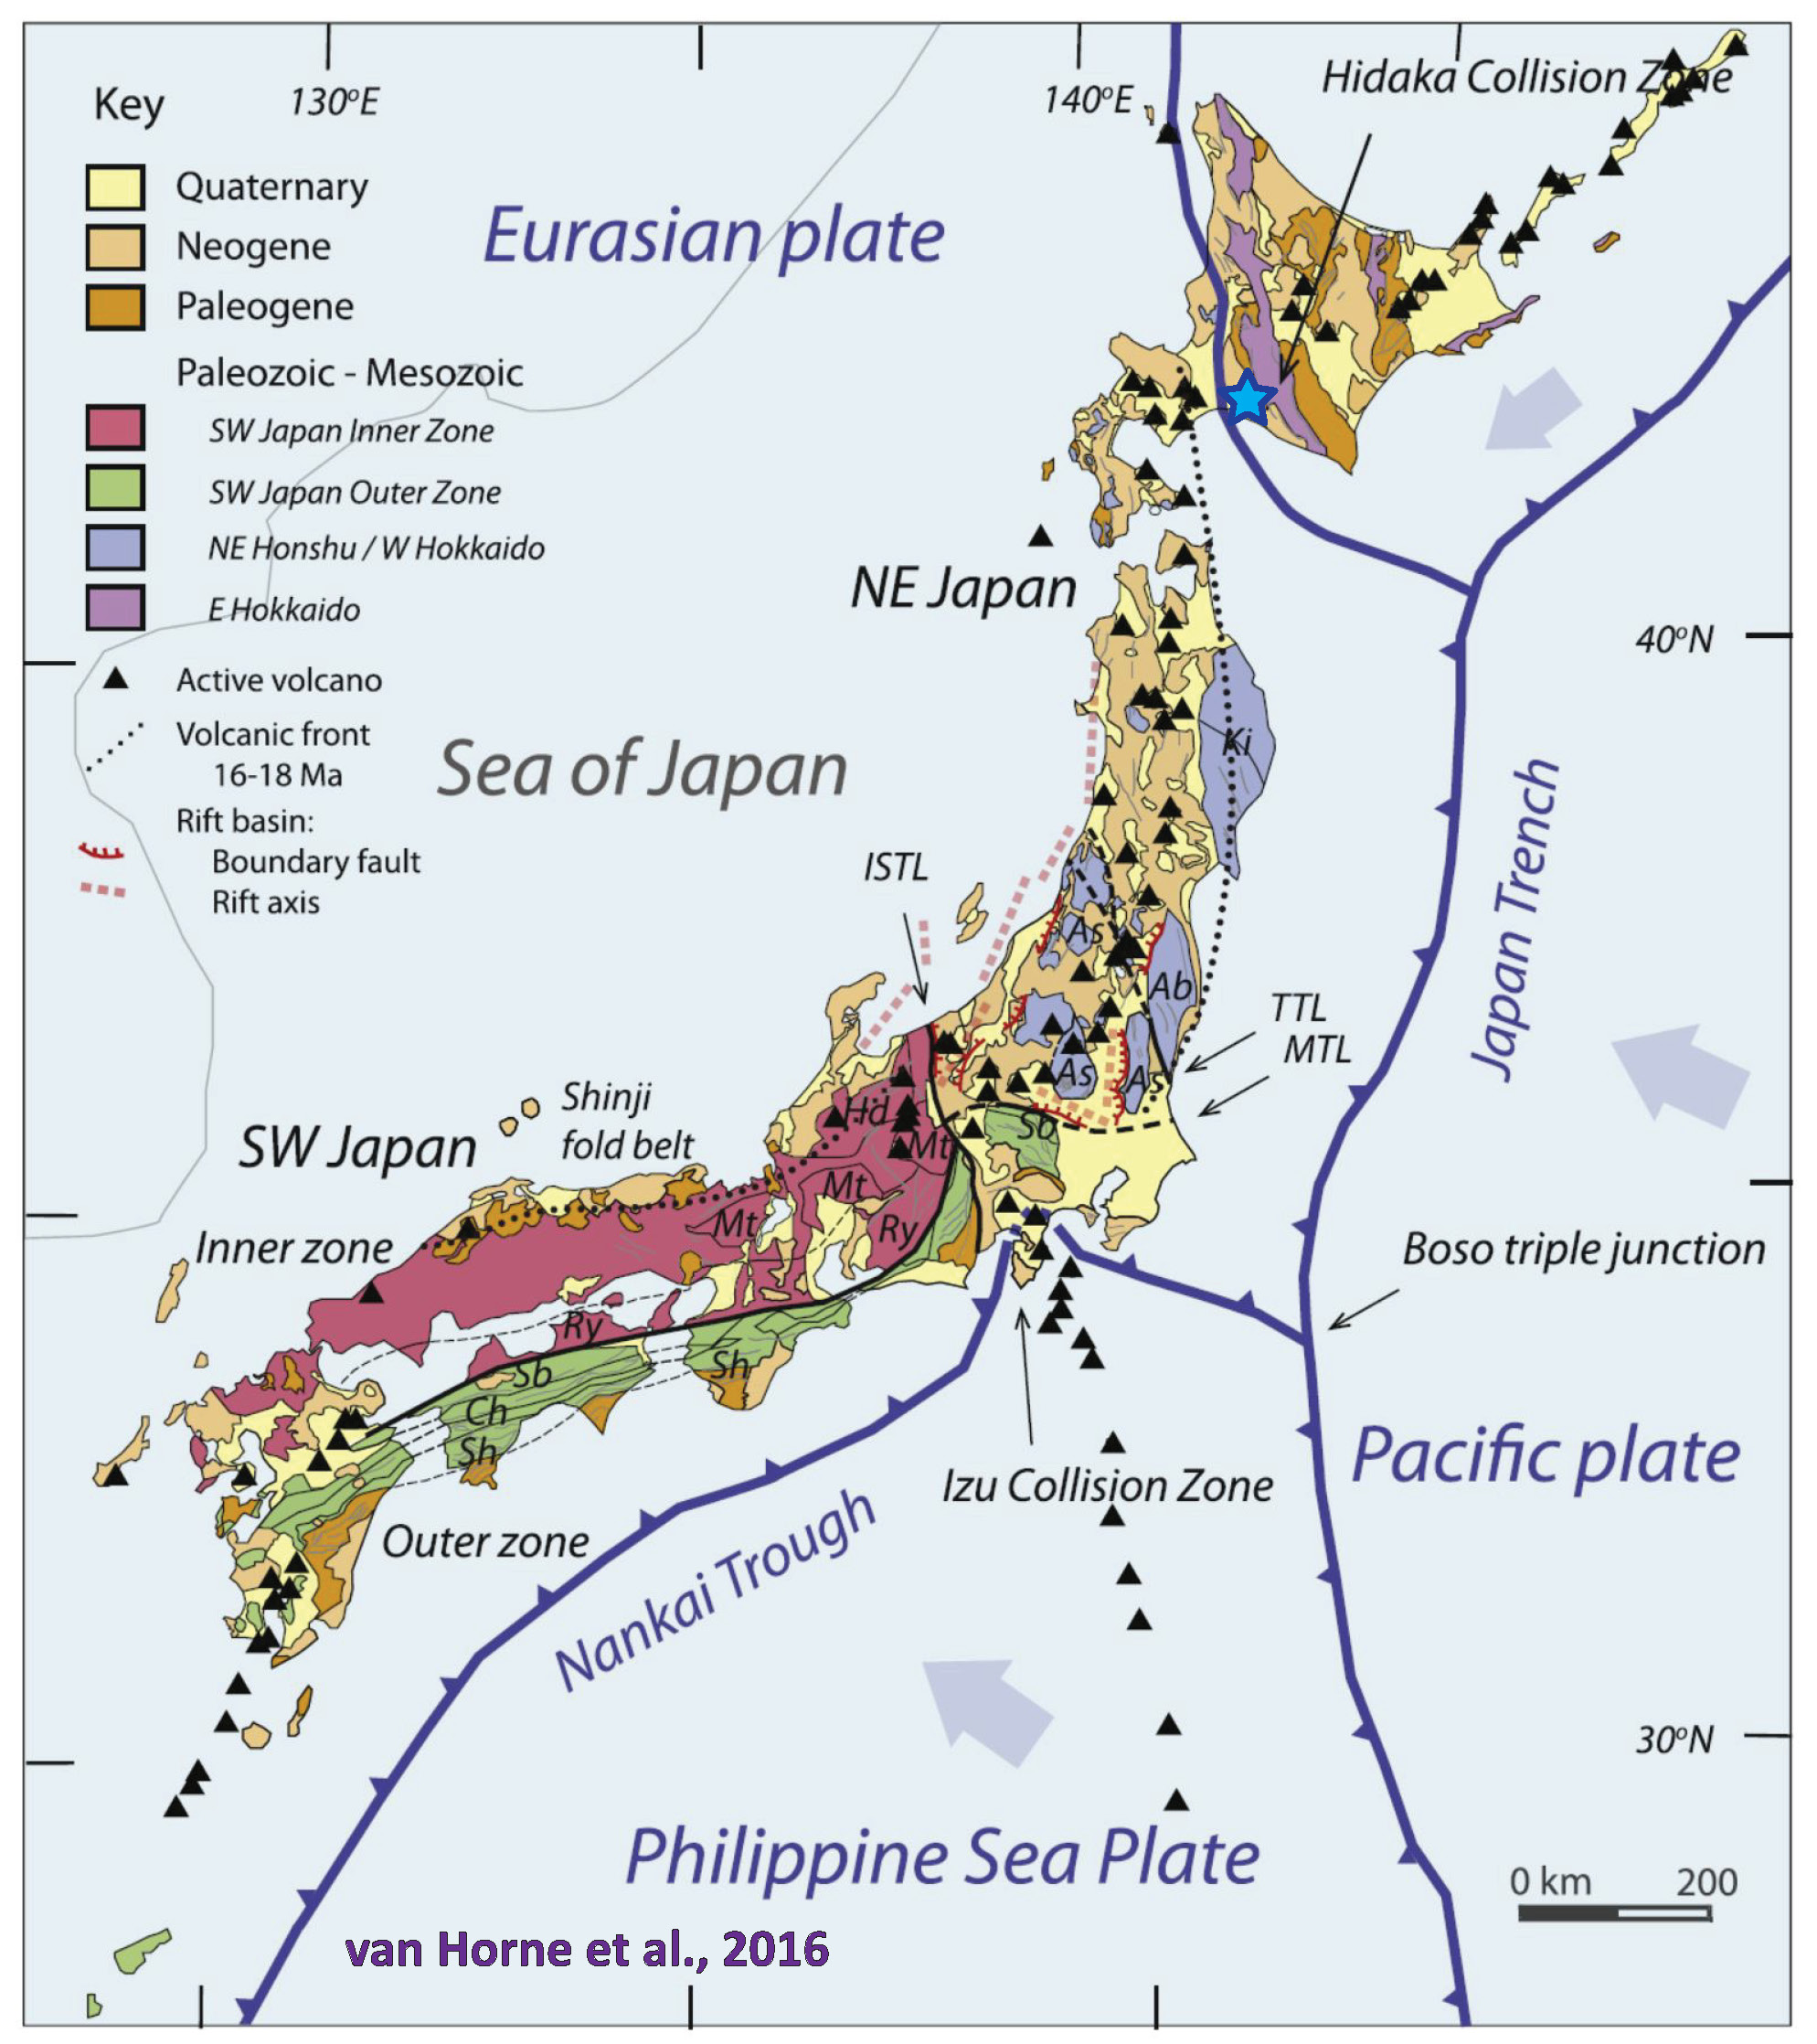 show me a diagram of a volcanic zone collision violent shaking triggers massive landslides in sapporo japan  massive landslides in sapporo japan